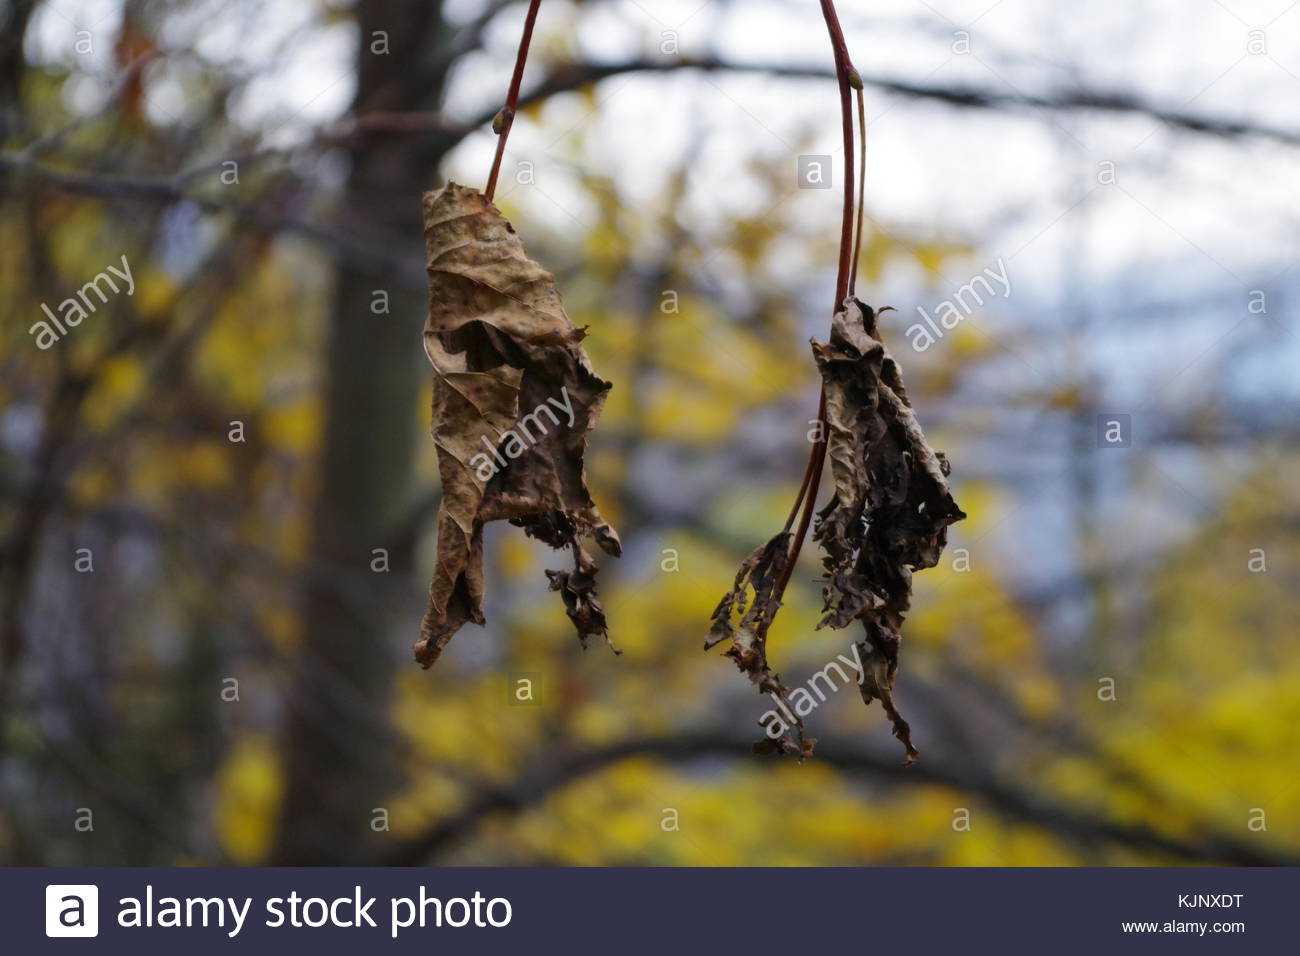 Dead Leaves of Autumn - Stock Image